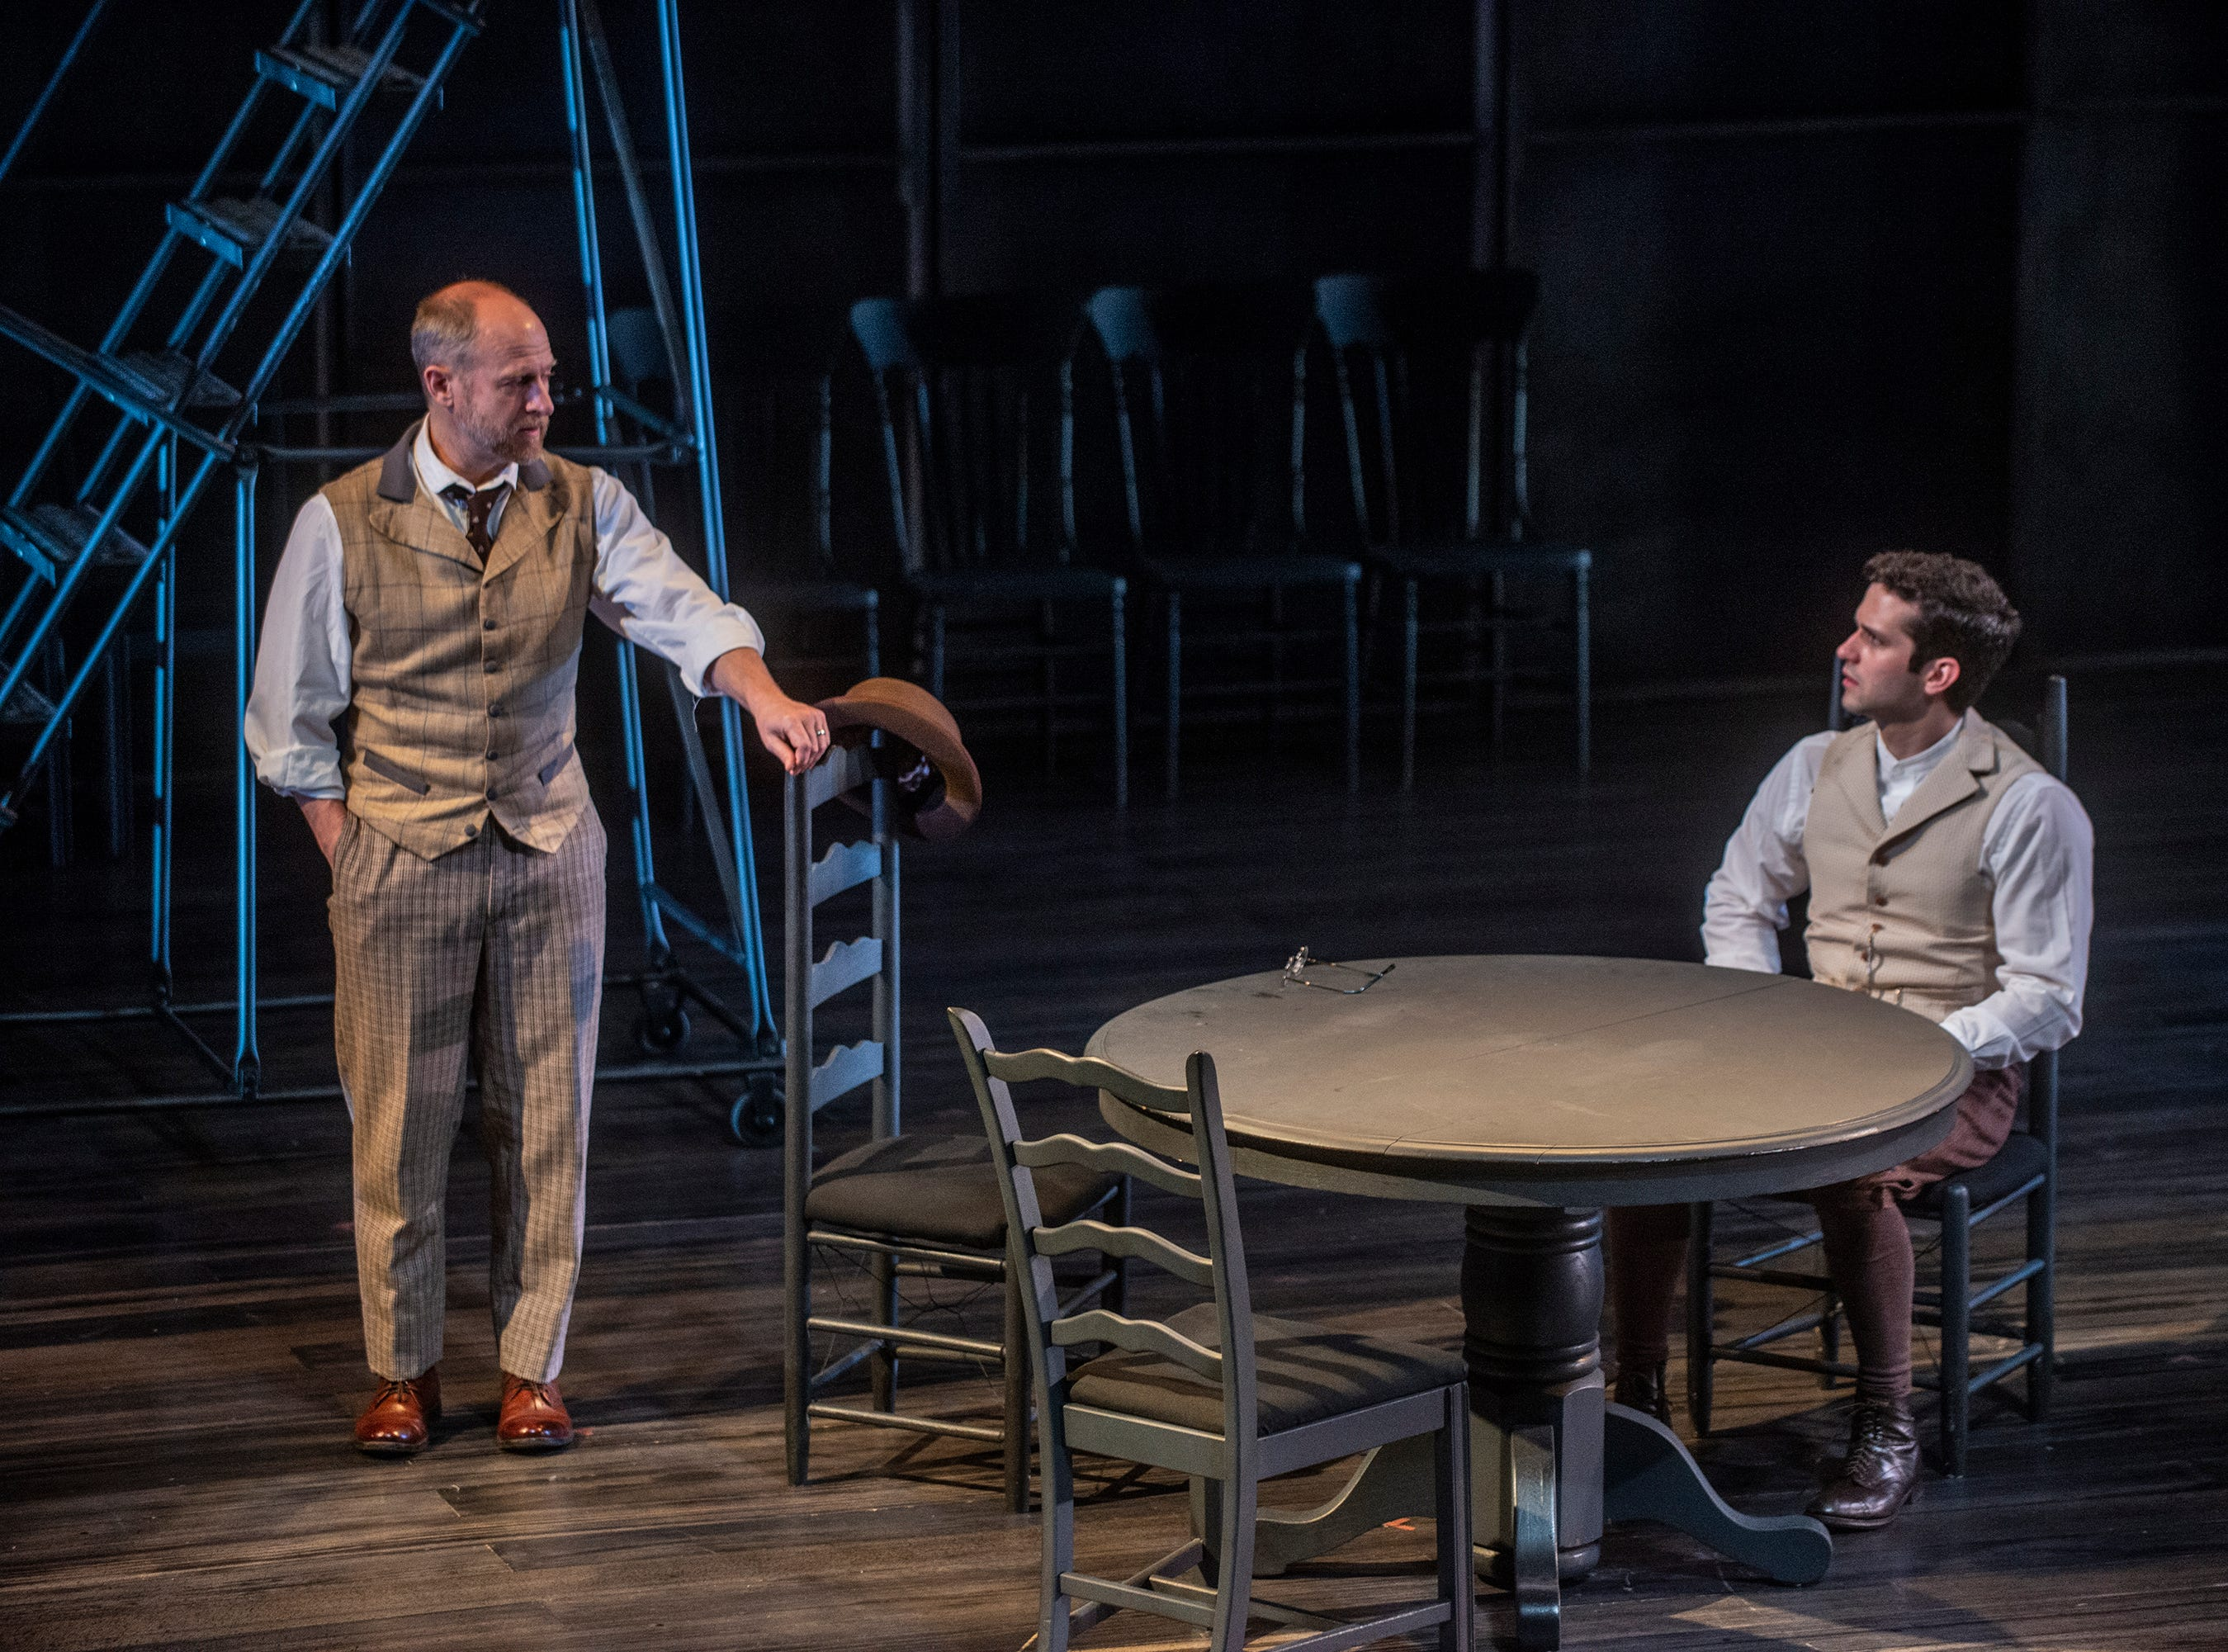 Dr. Gibbs (Christopher Gerson) talks with his son George Gibbs (Michael Williams) in Our Town. Our Town dress rehearsal Thursday, Feb. 21, 2019, at Alabama Shakespeare Festival in Montgomery, Ala.